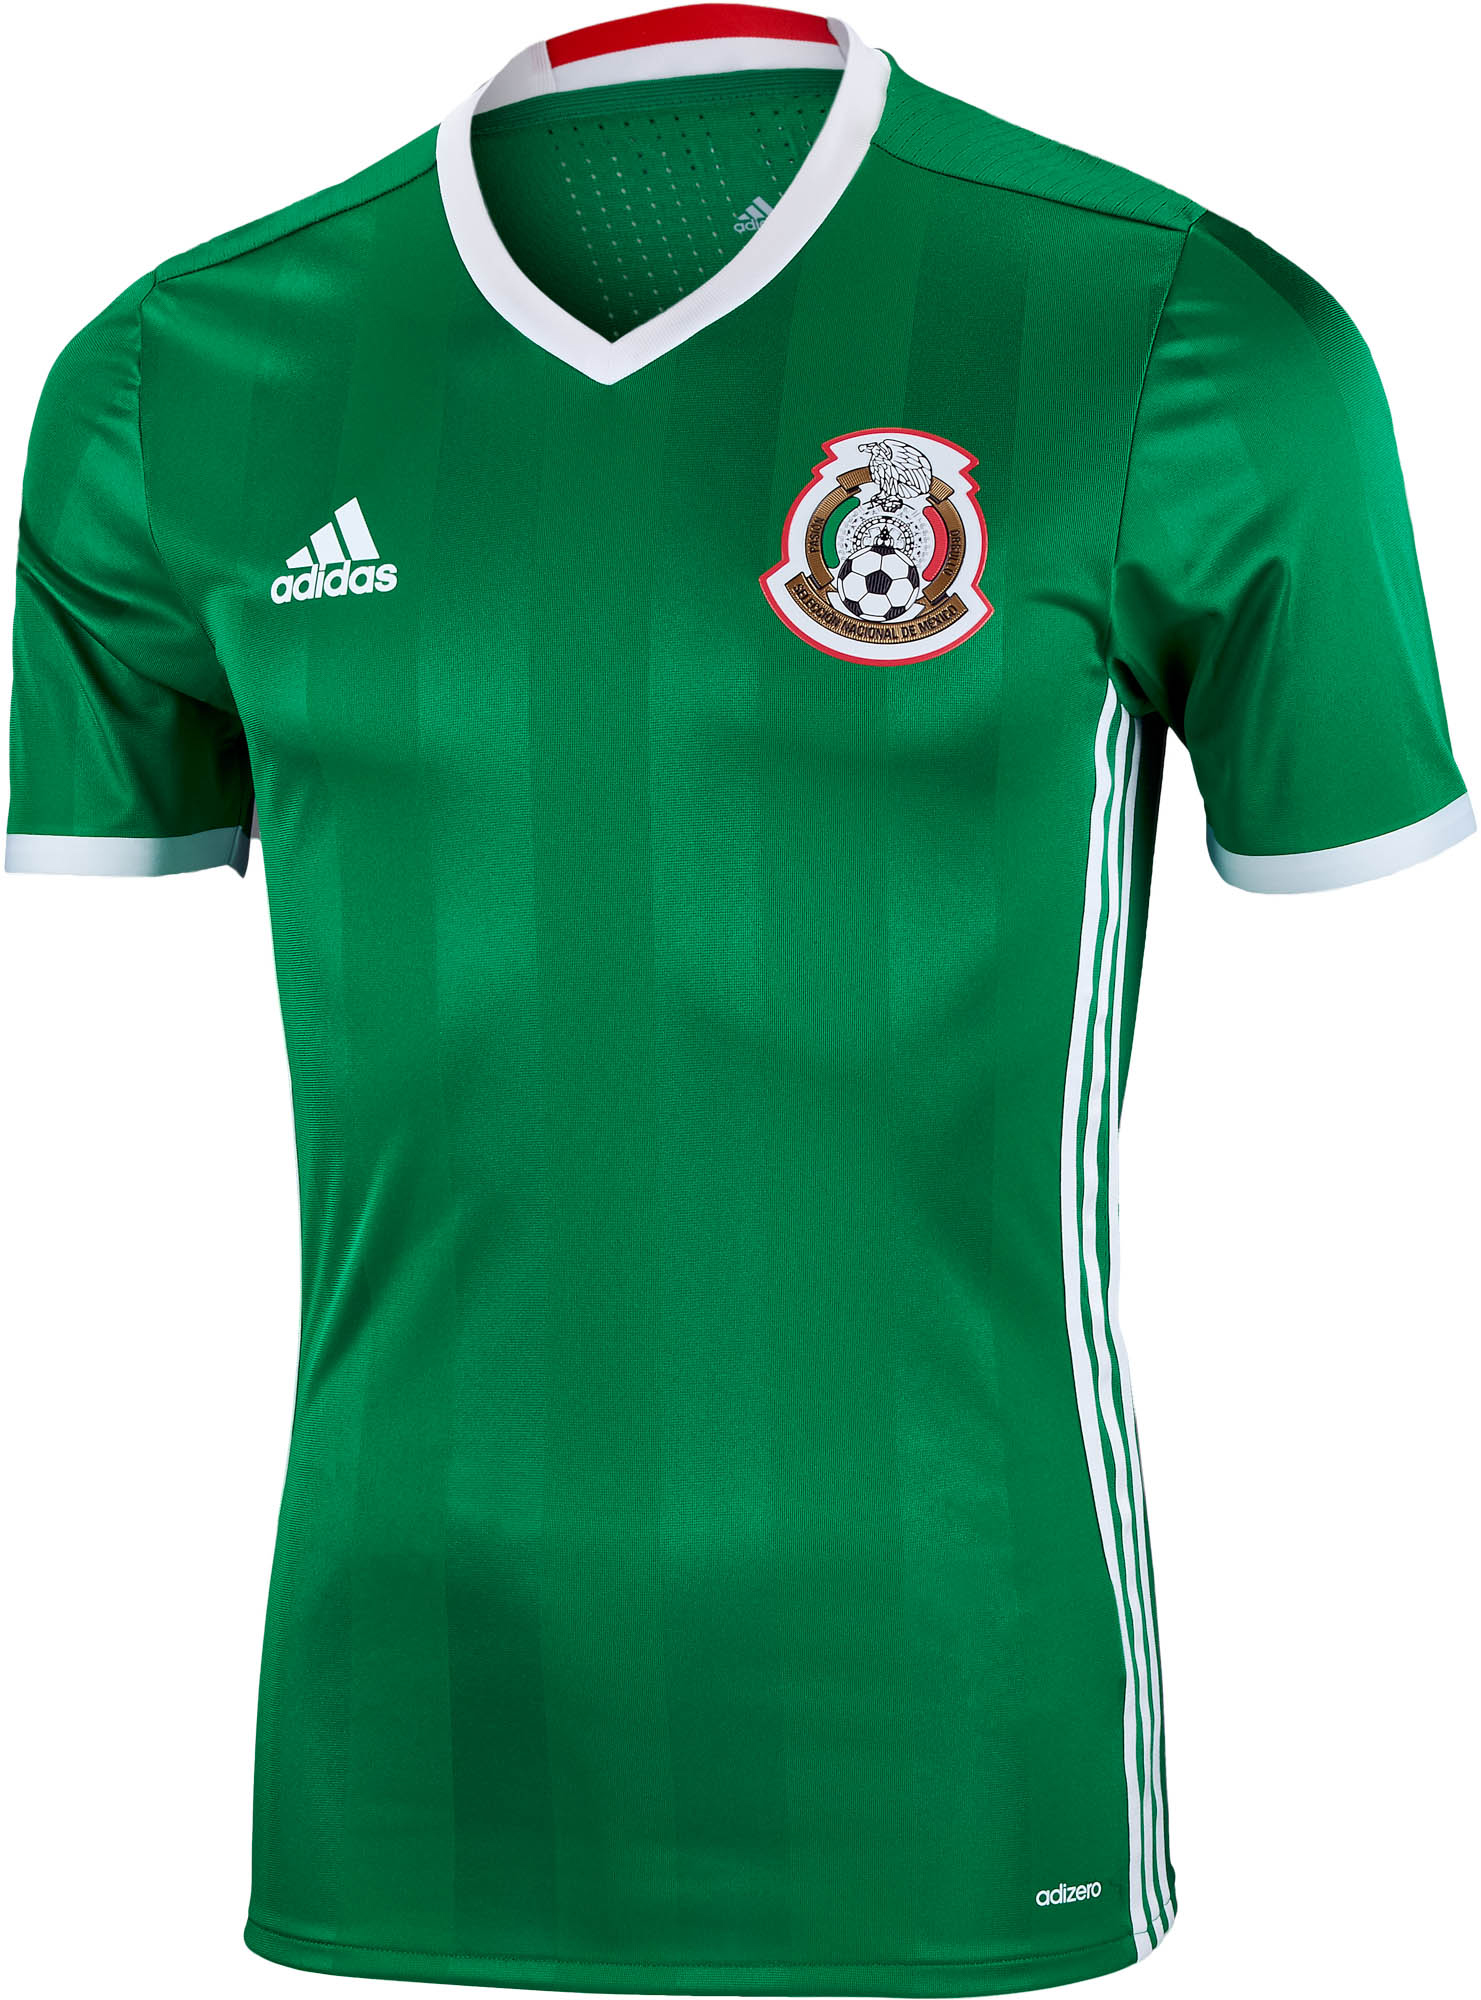 3325b561e6c adidas Mexico Authentic Home Jersey - 2016 Mexico Jerseys